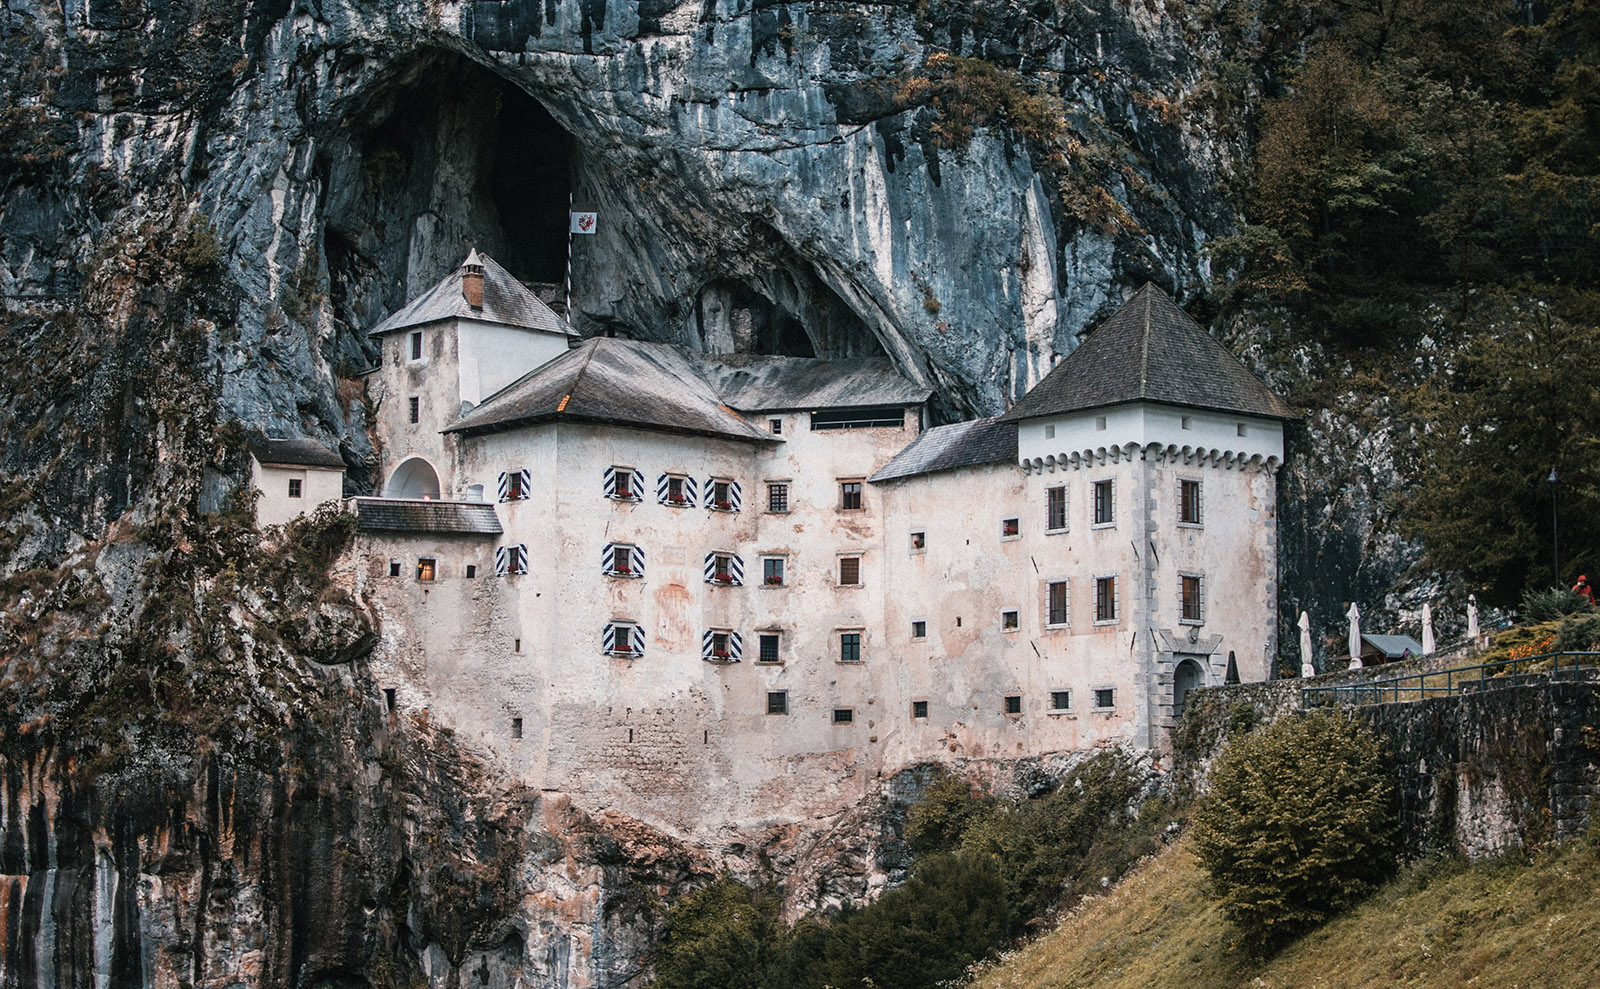 Cave Castle, Reading Treehouse, Iceland Writers Retreat, Book Hangovers & More: Endnotes 02 October